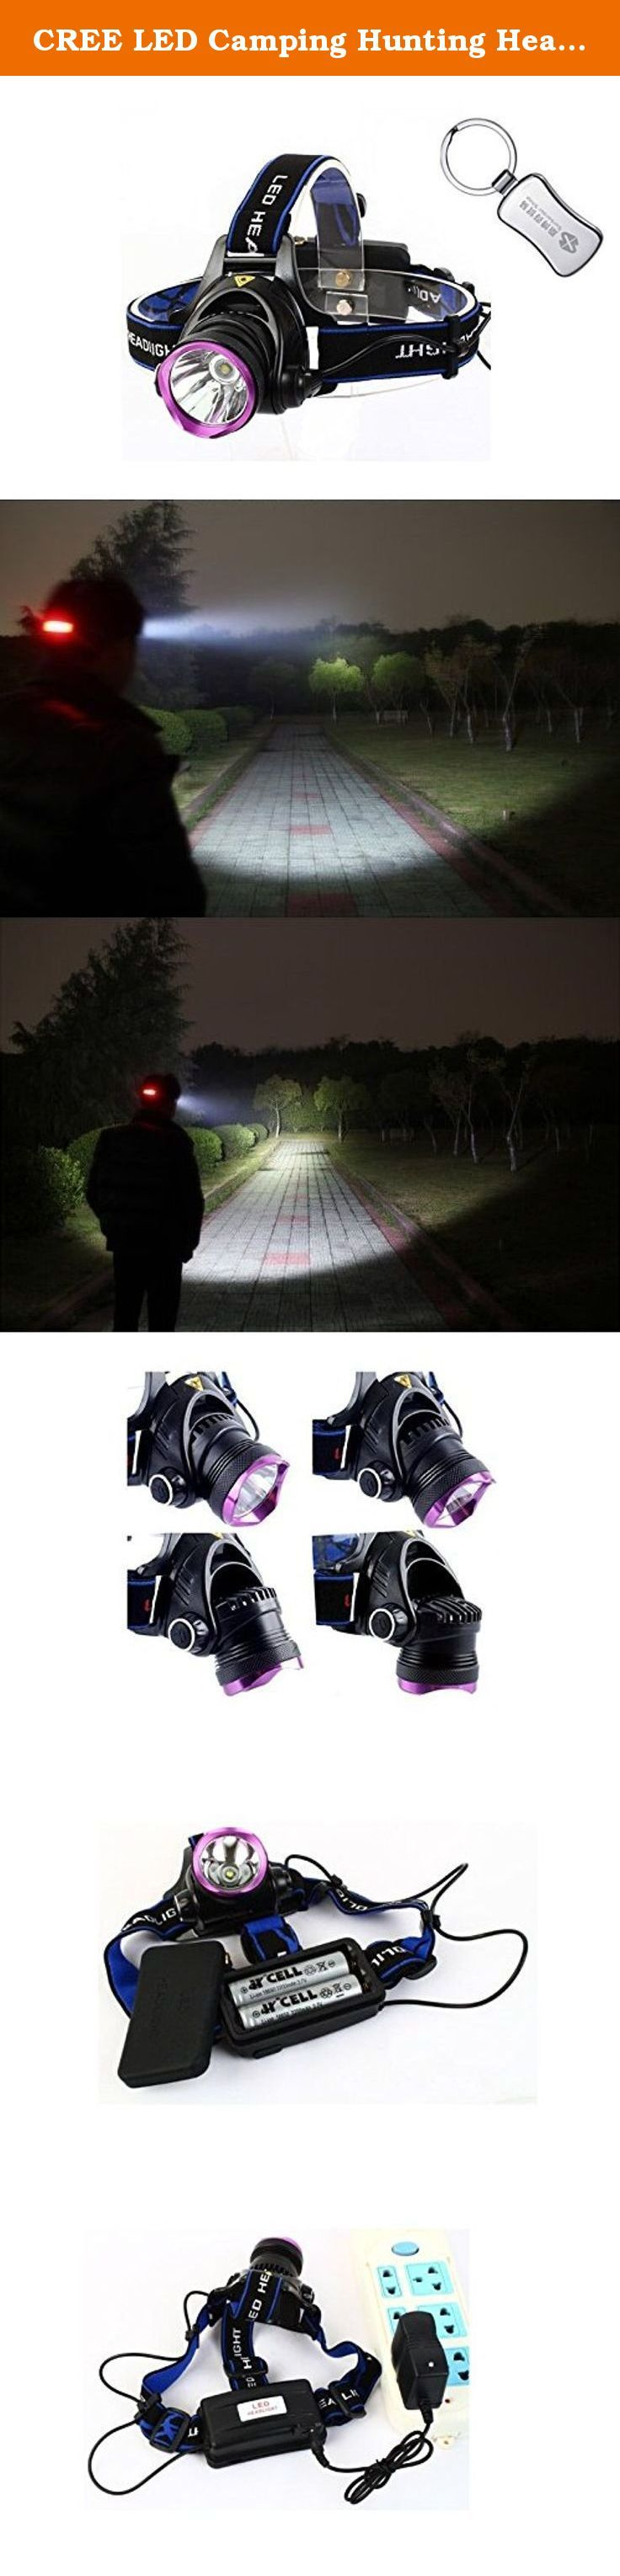 CREE LED Camping Hunting Head lamp 18650 T6 Rechargeable Zoom Waterproof Headlamp Flashlight XM-L XML headlamp lantern + A keychain. color:black wattage:8 light source:LED headlamp lantern:lanterna de cabeca.